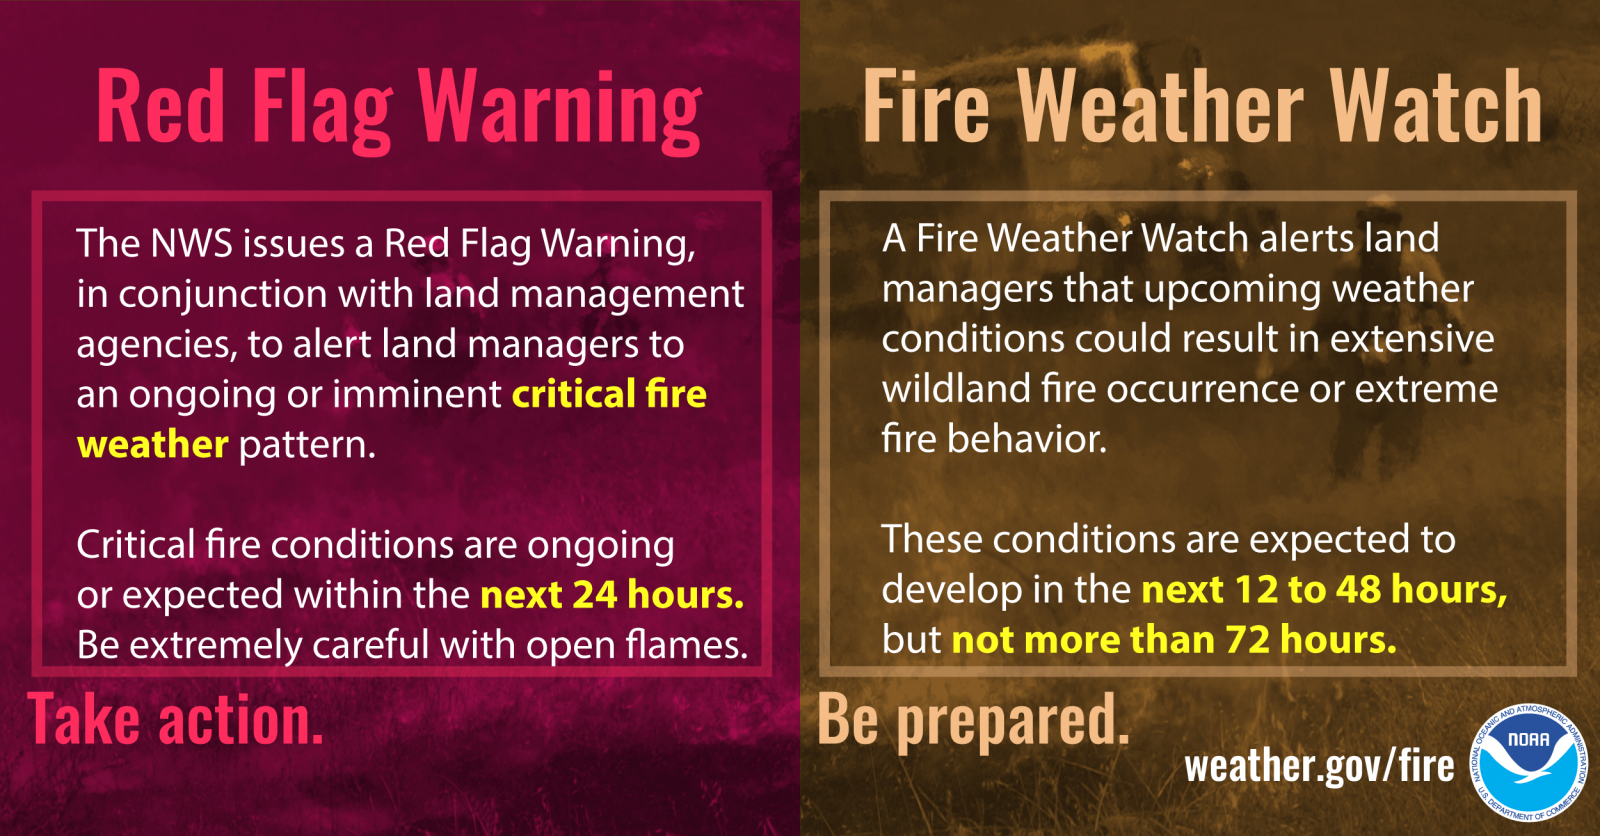 Fire Watch vs. Red Flag Warning